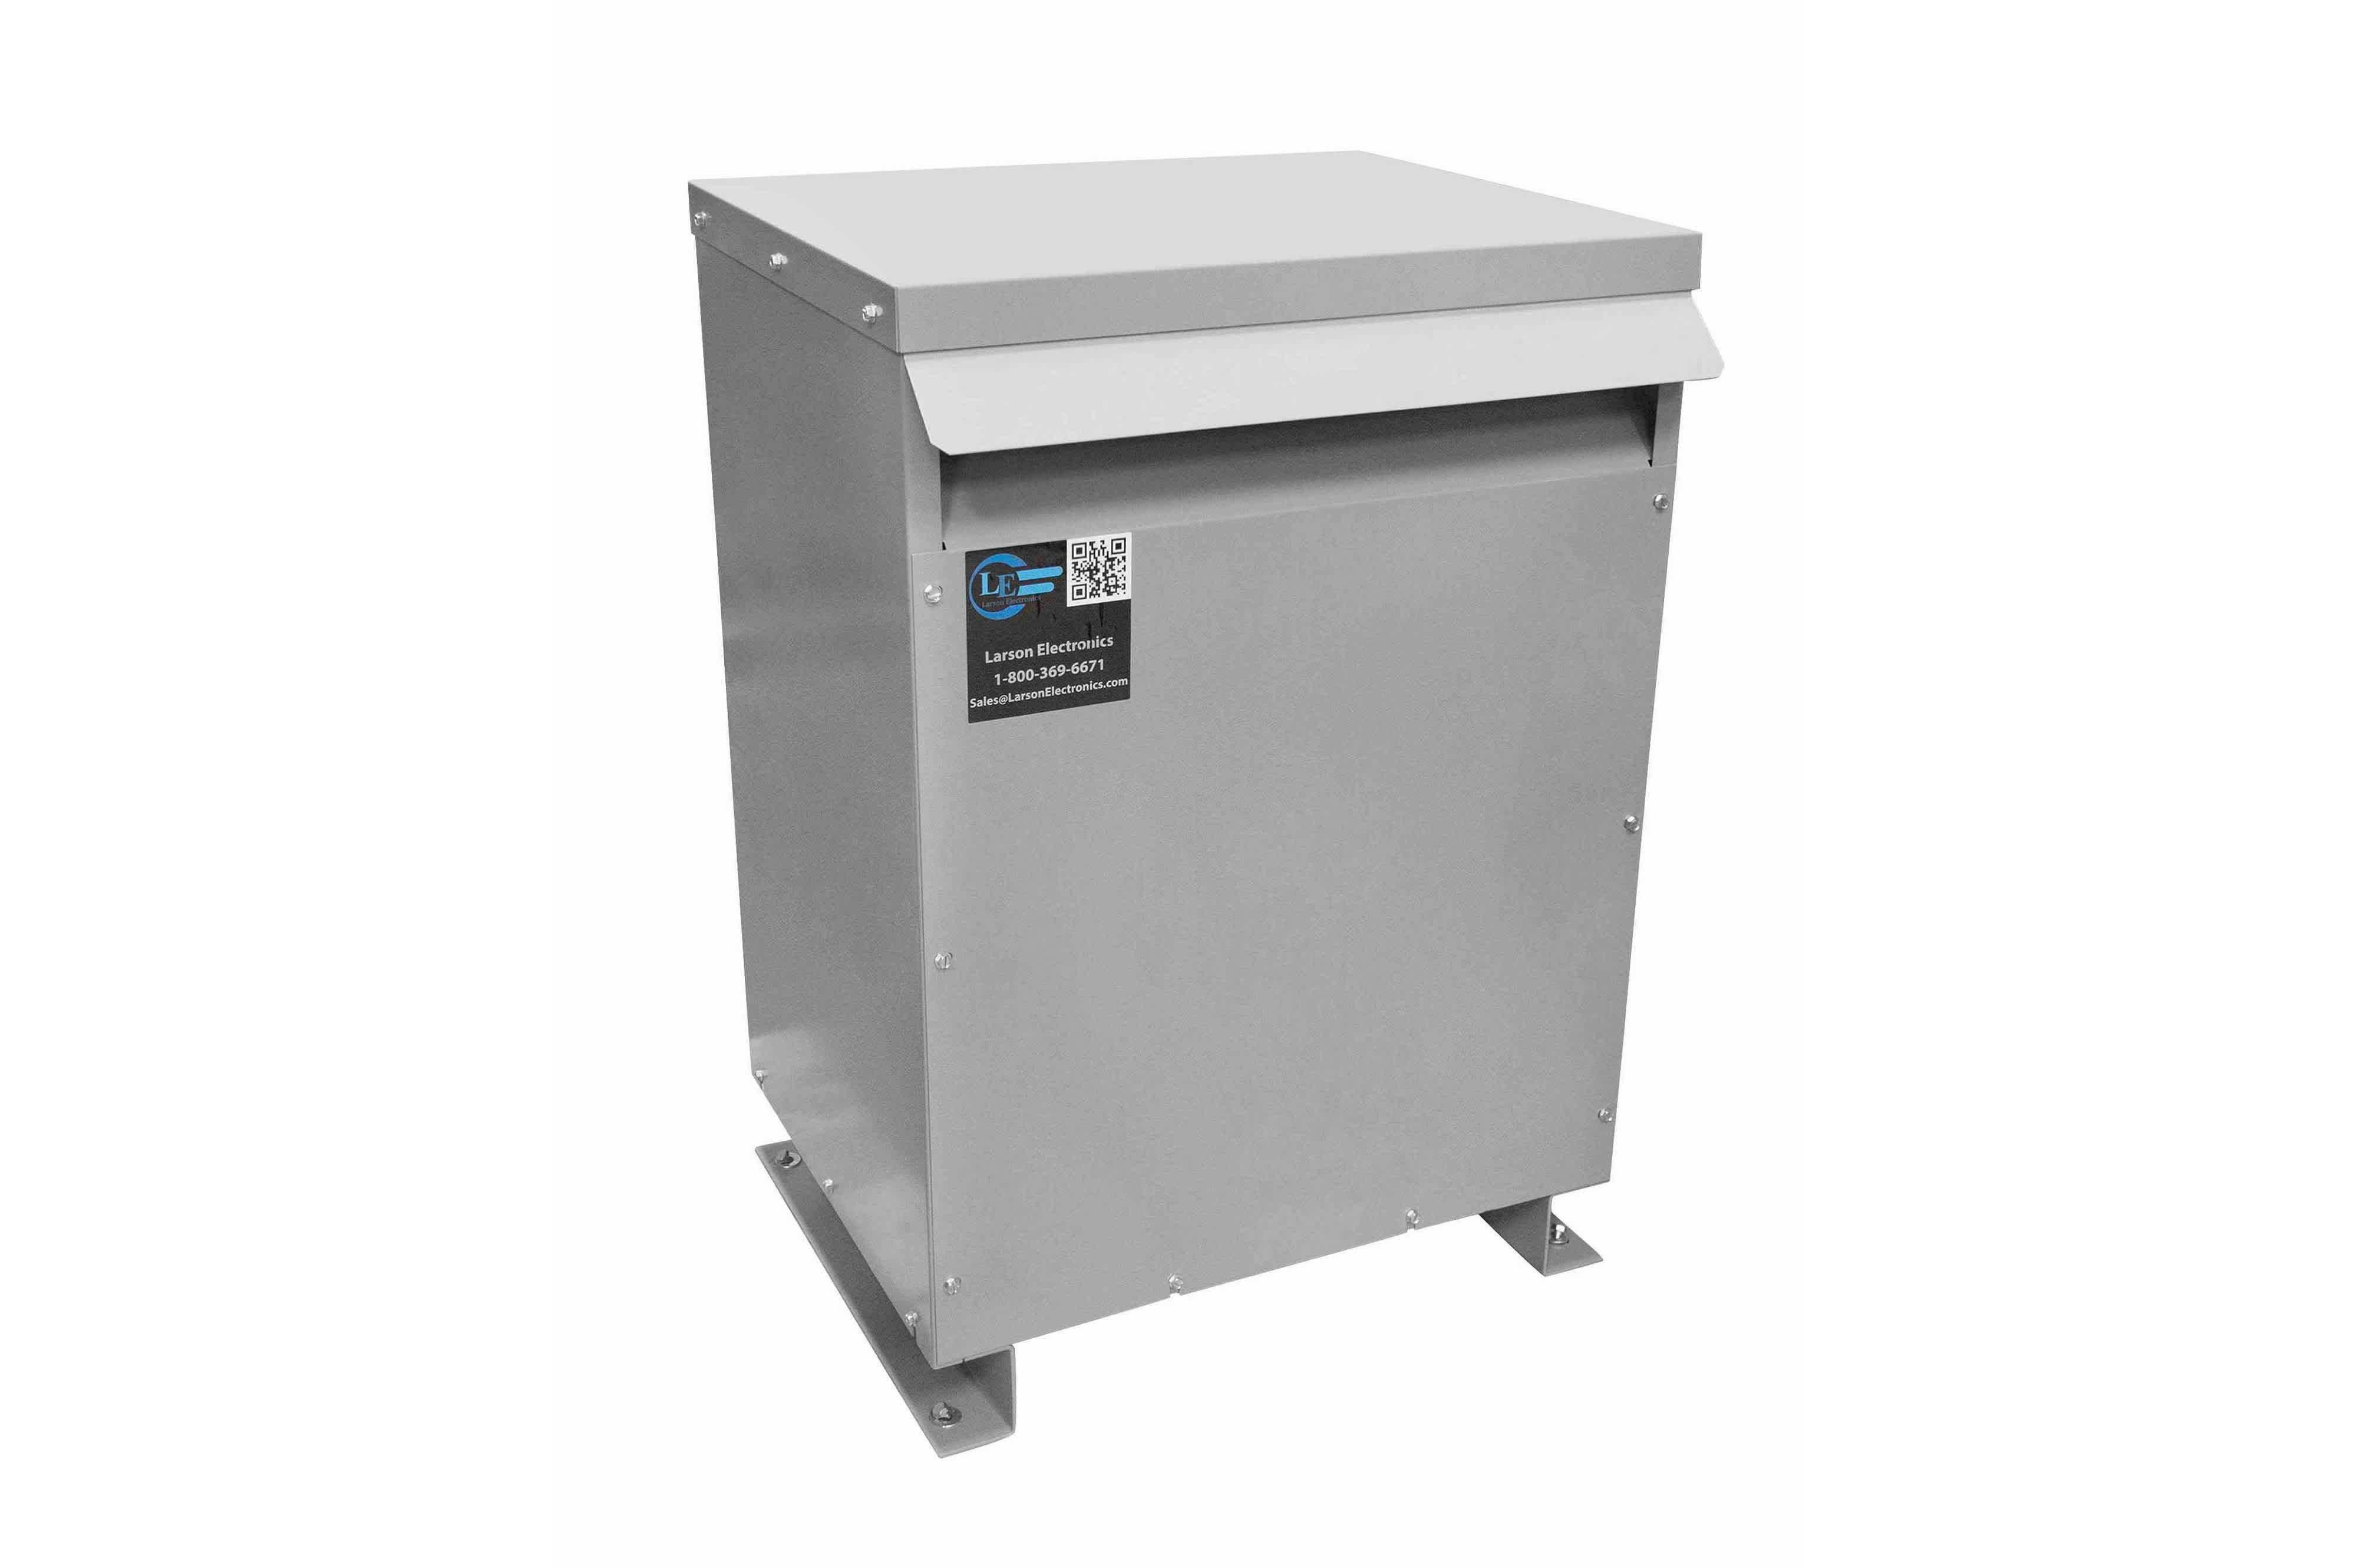 42.5 kVA 3PH Isolation Transformer, 480V Wye Primary, 380Y/220 Wye-N Secondary, N3R, Ventilated, 60 Hz